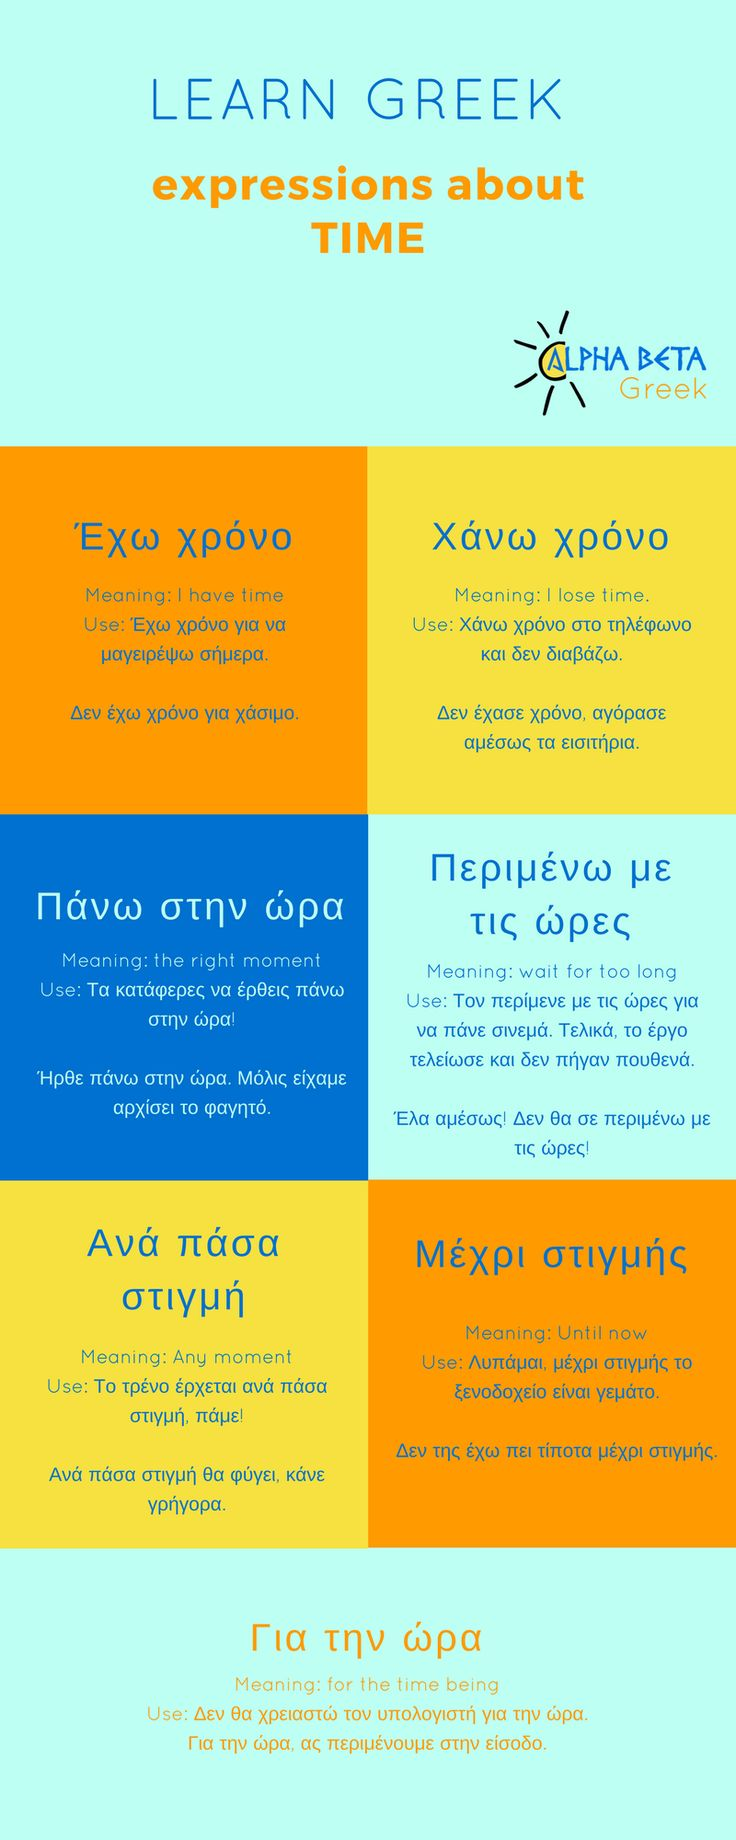 Greek expressions about time. Infographic by Alpha Beta Greek